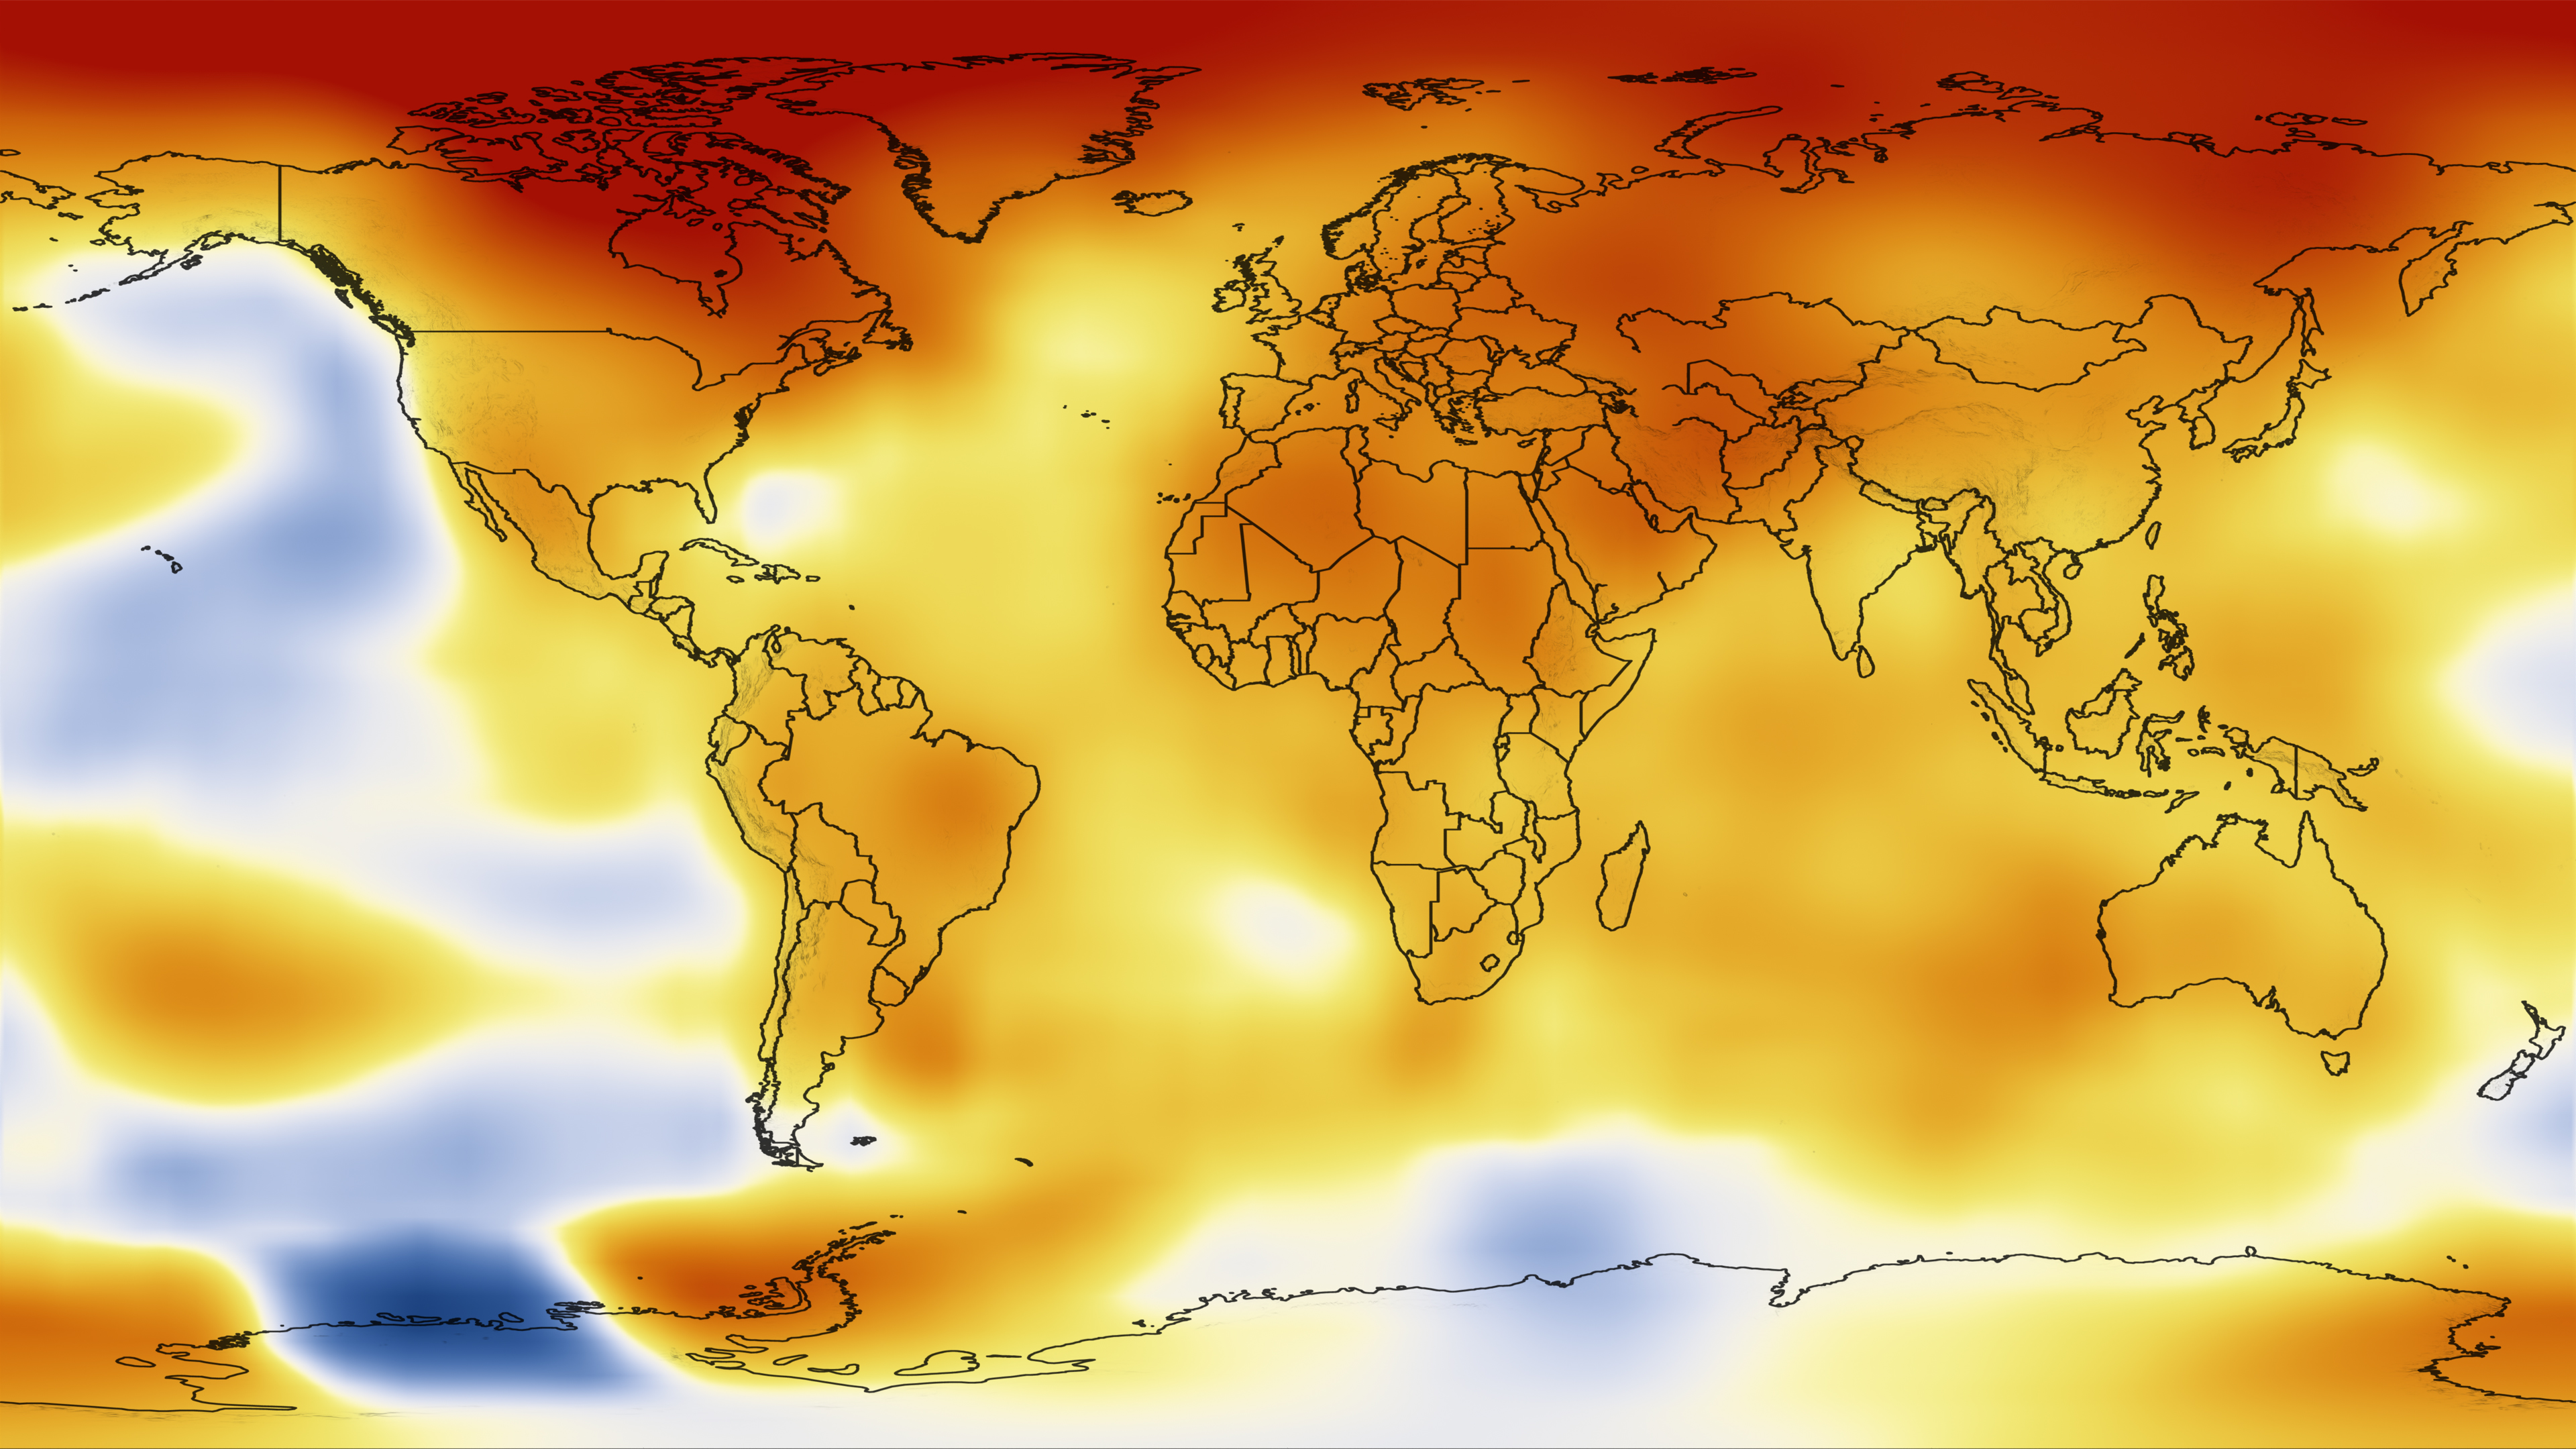 NASA - NASA Finds 2012 Sustained Long-Term Climate Warming Trend